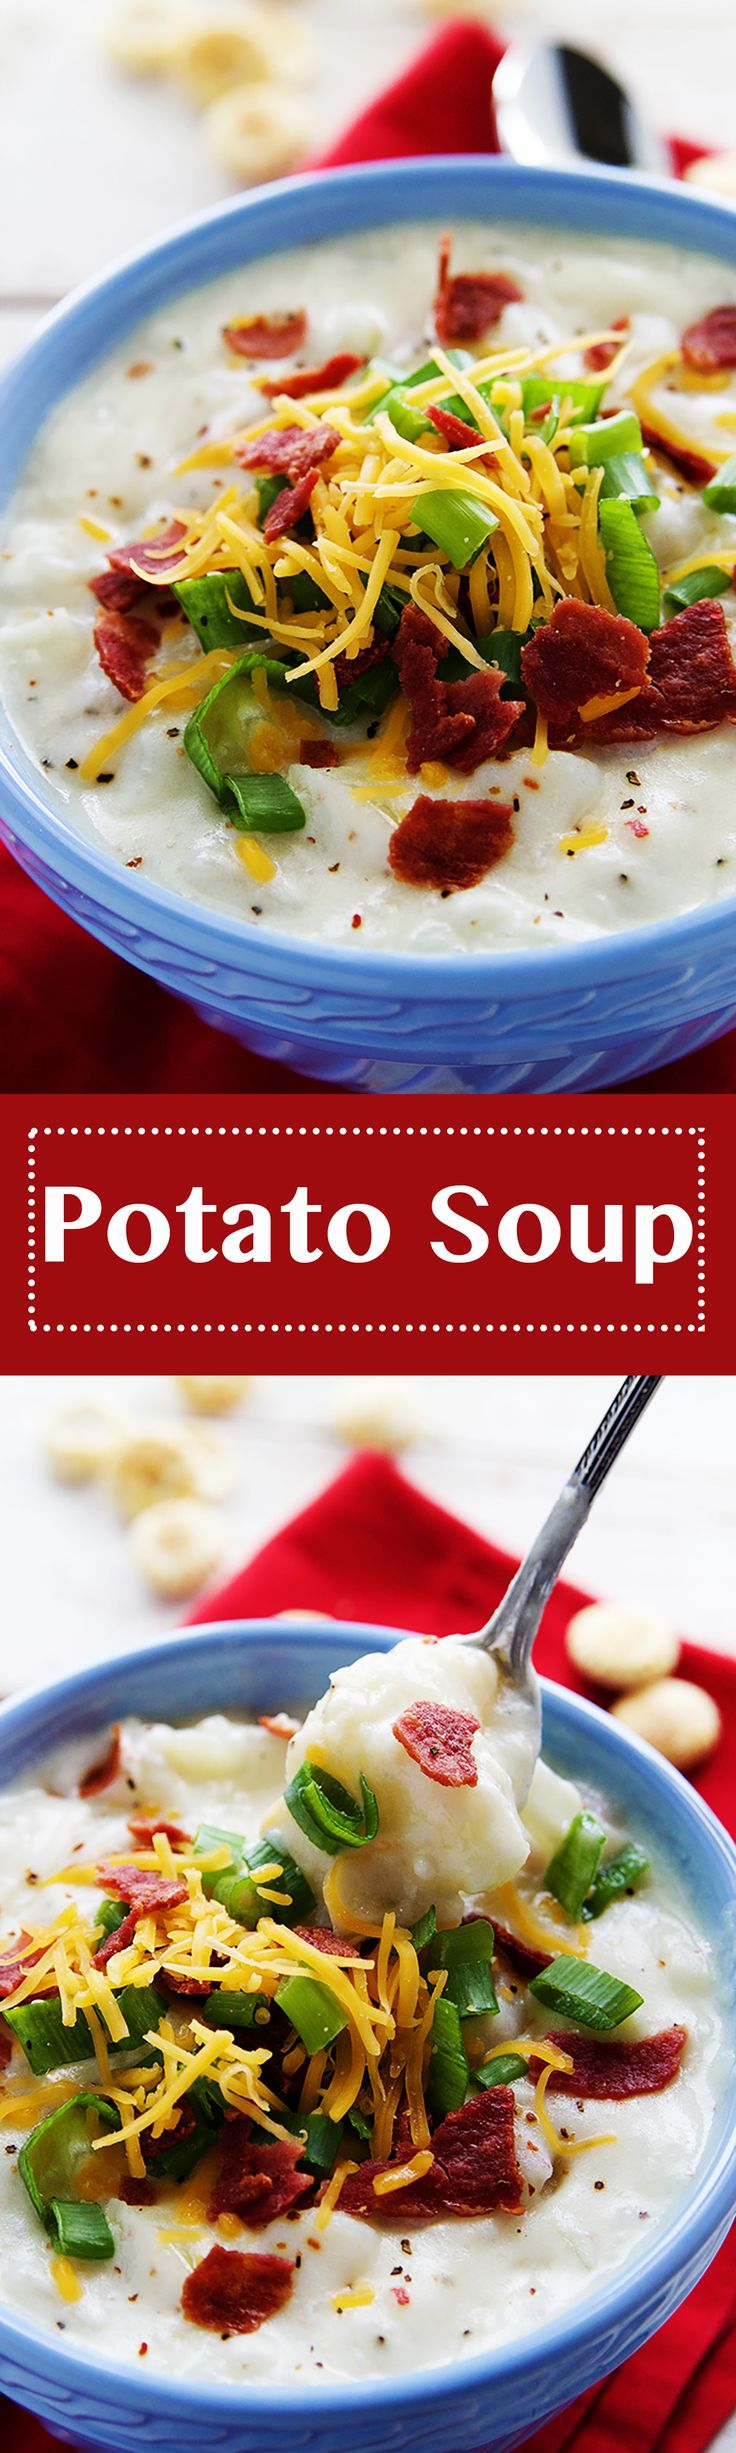 ... creamy and flavorful Potato Soup is just what you need to heat up the